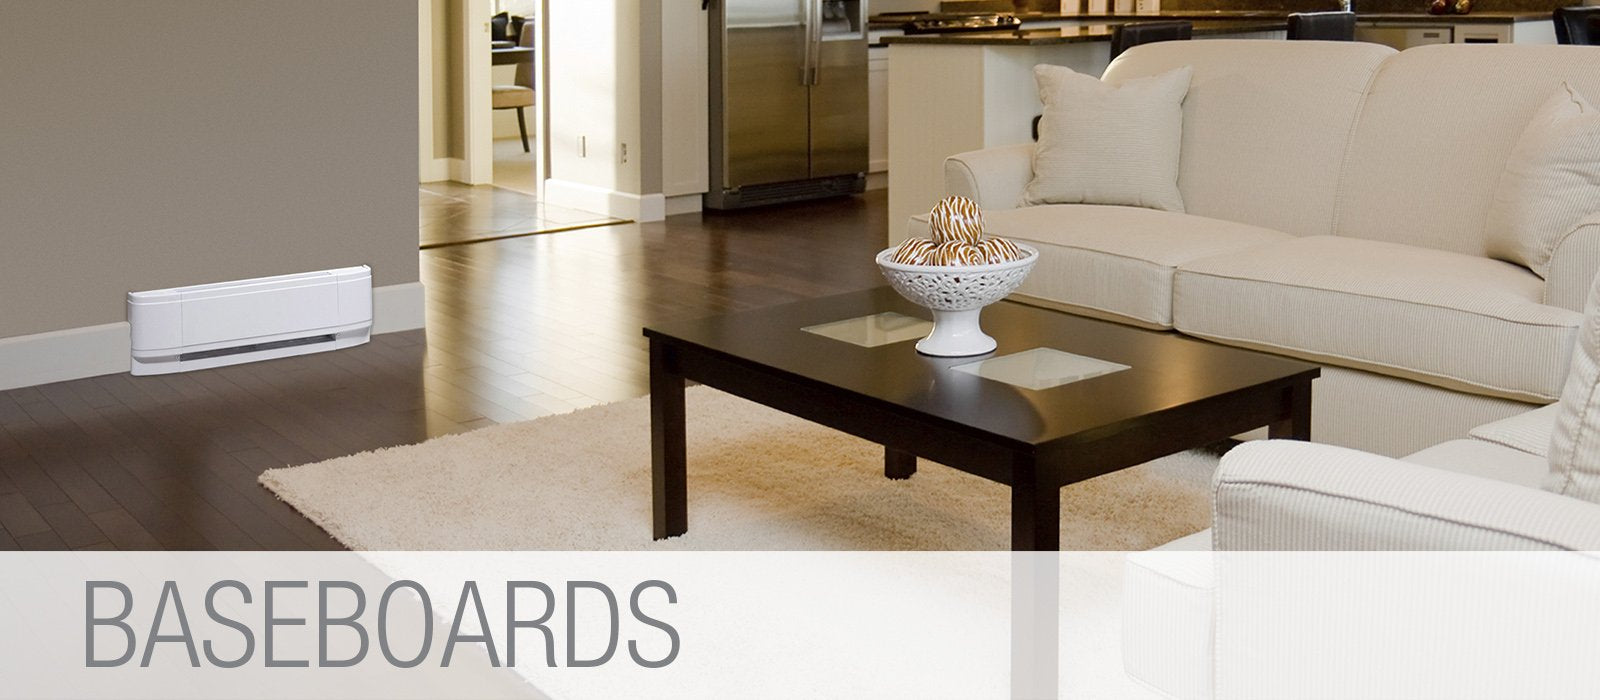 Baseboards (Home Heat)